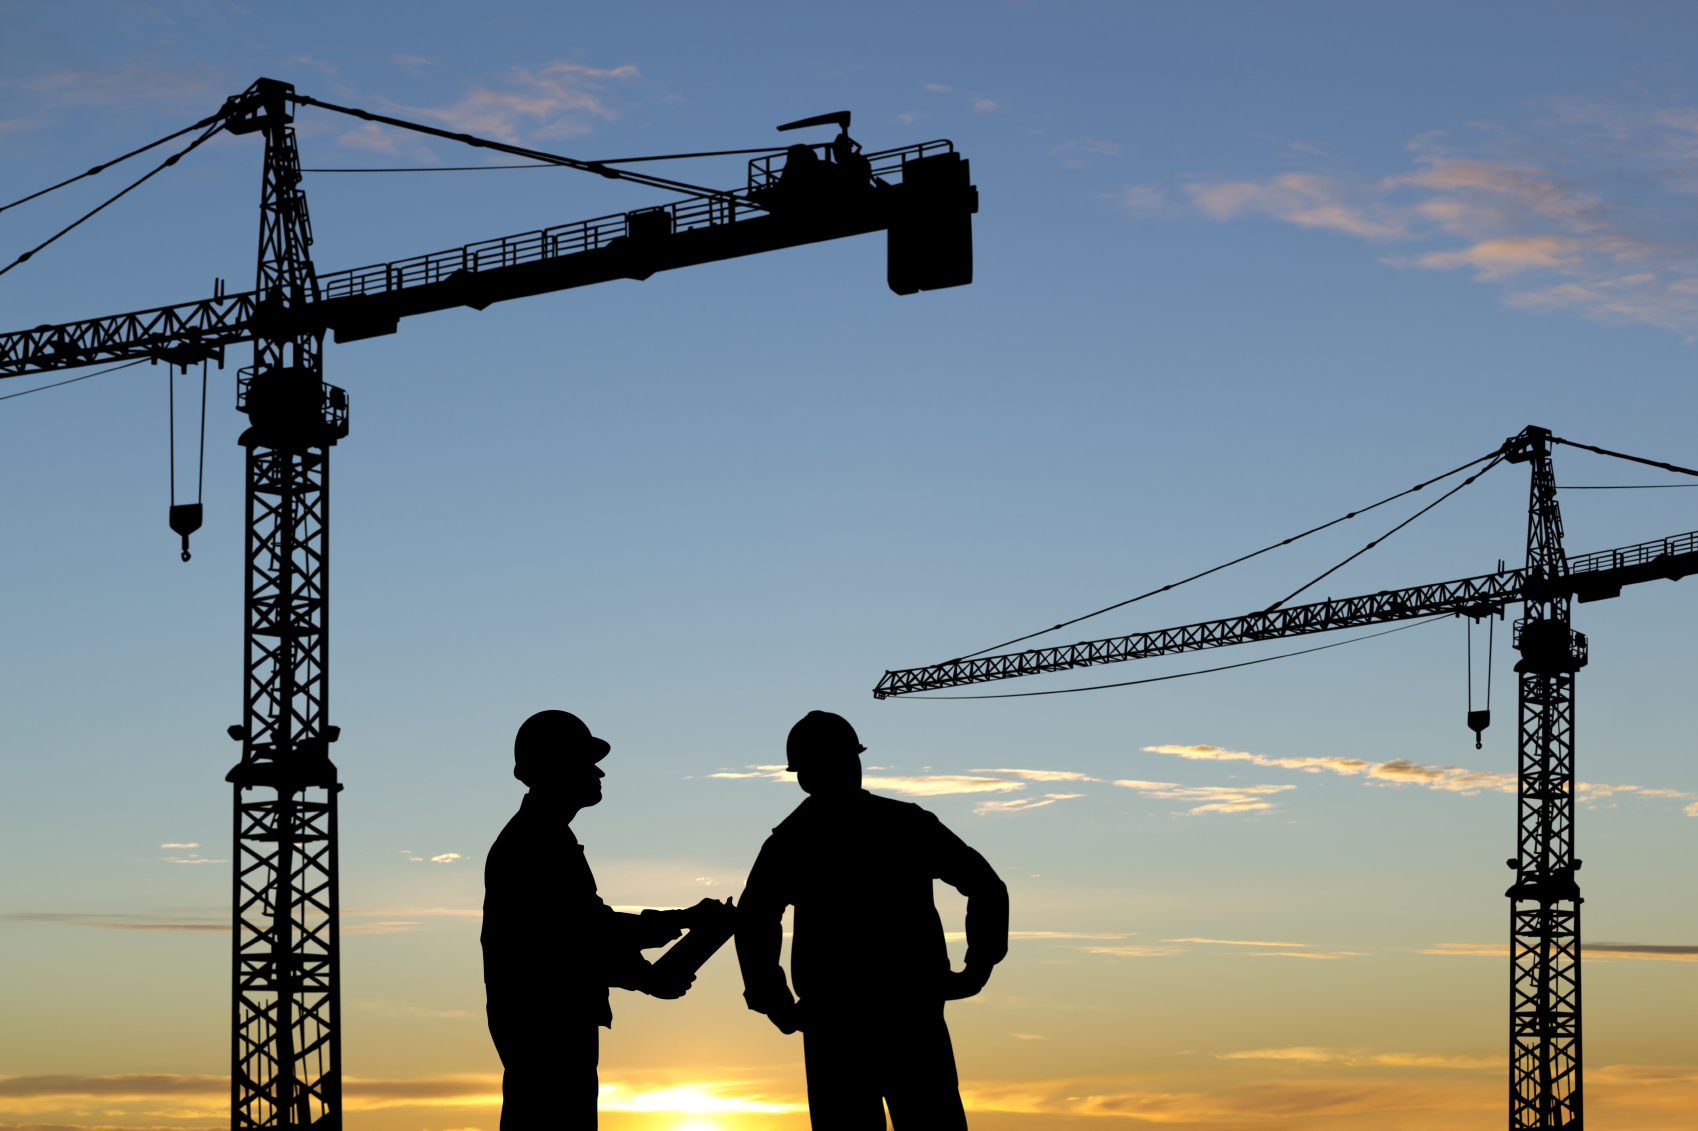 builders_and_crane_silhouette-1.jpg